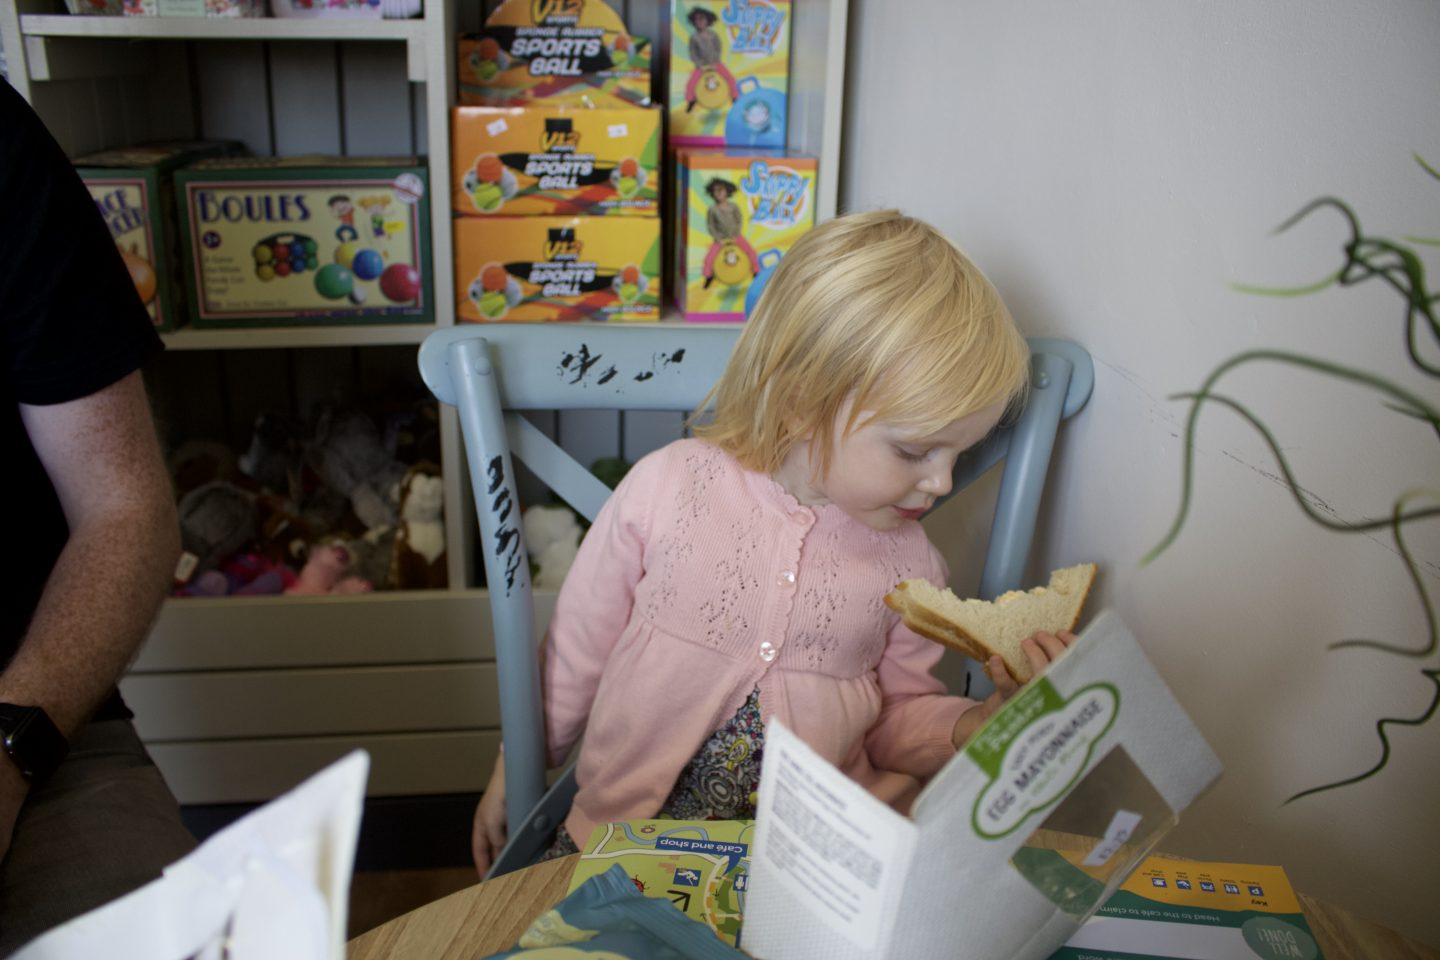 Little girl wearing a pink cardigan eating a sandwich in a cafe